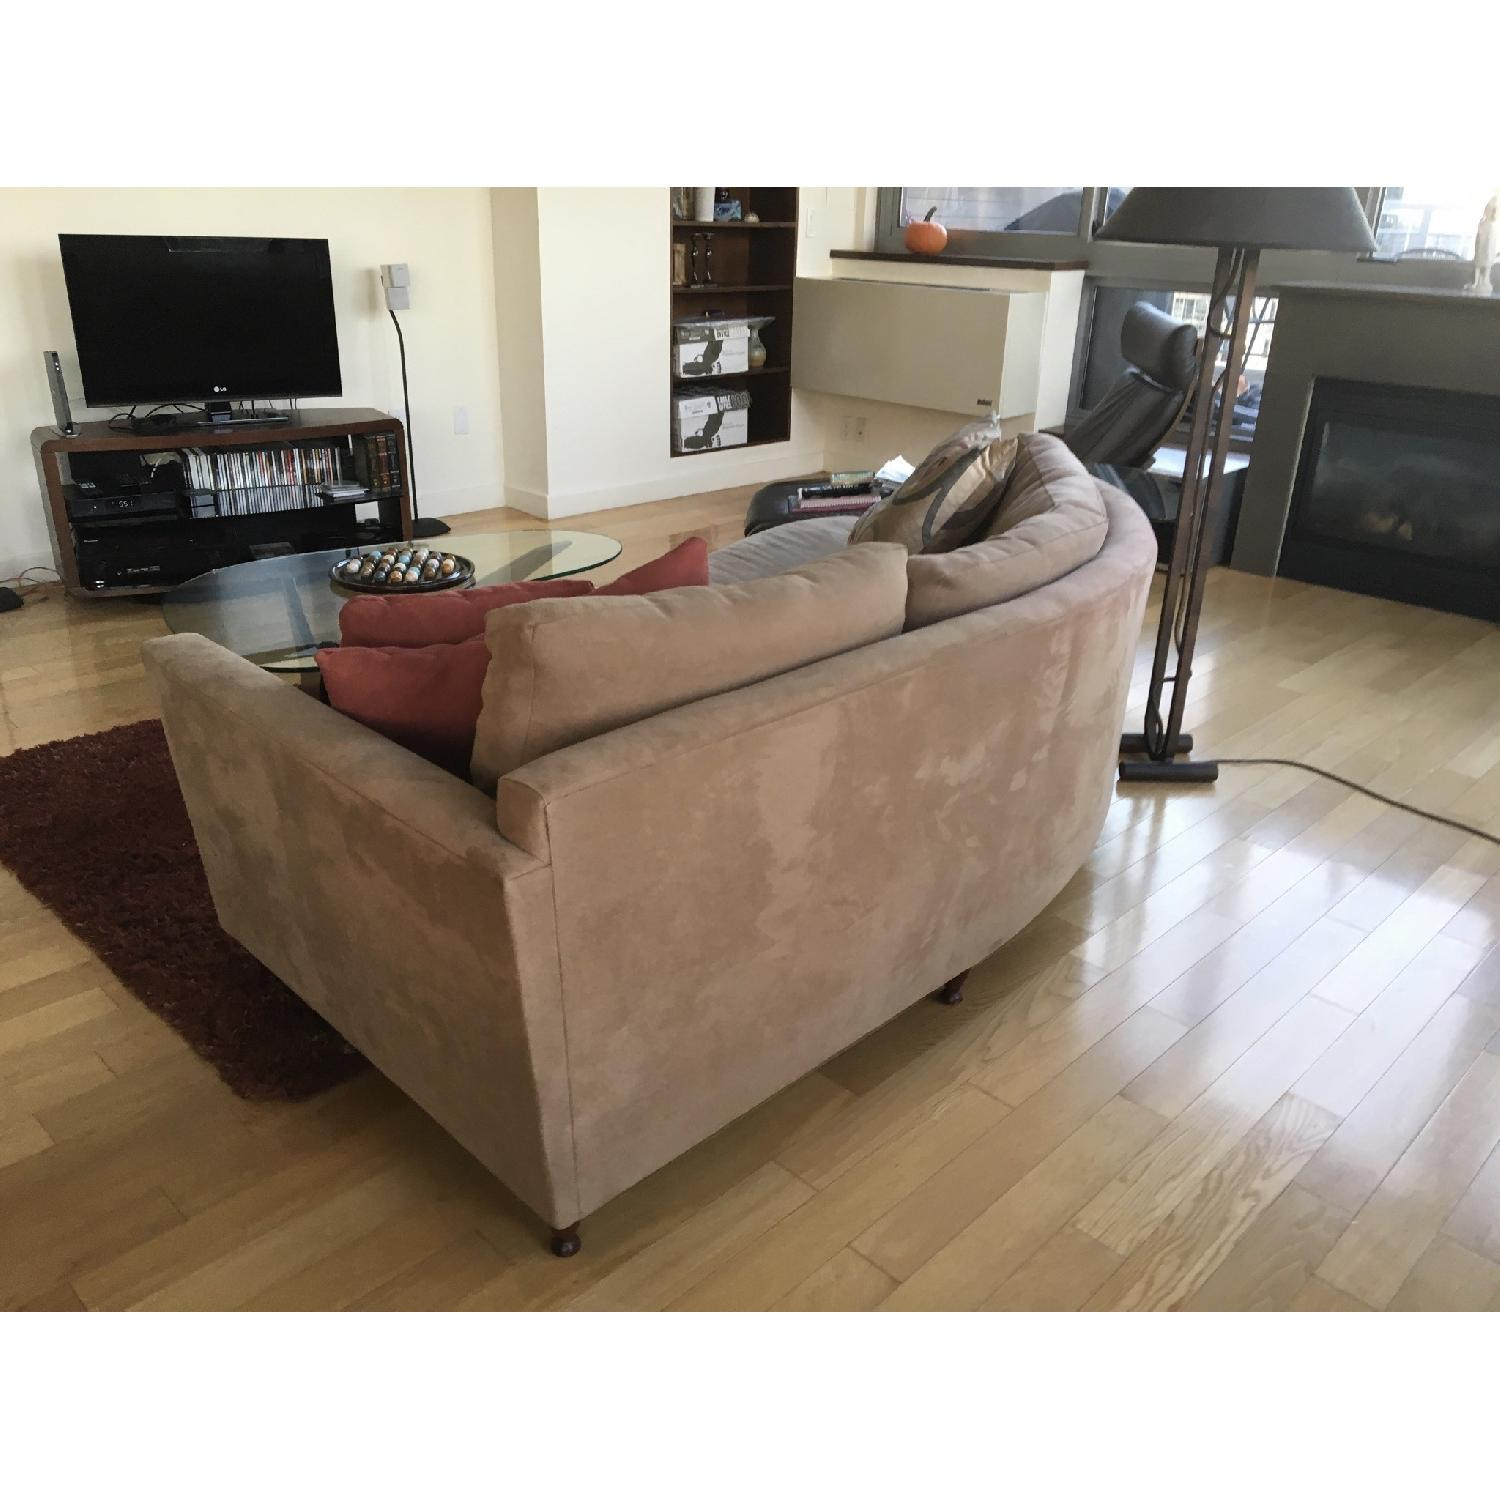 Grey Suede Couch - image-2